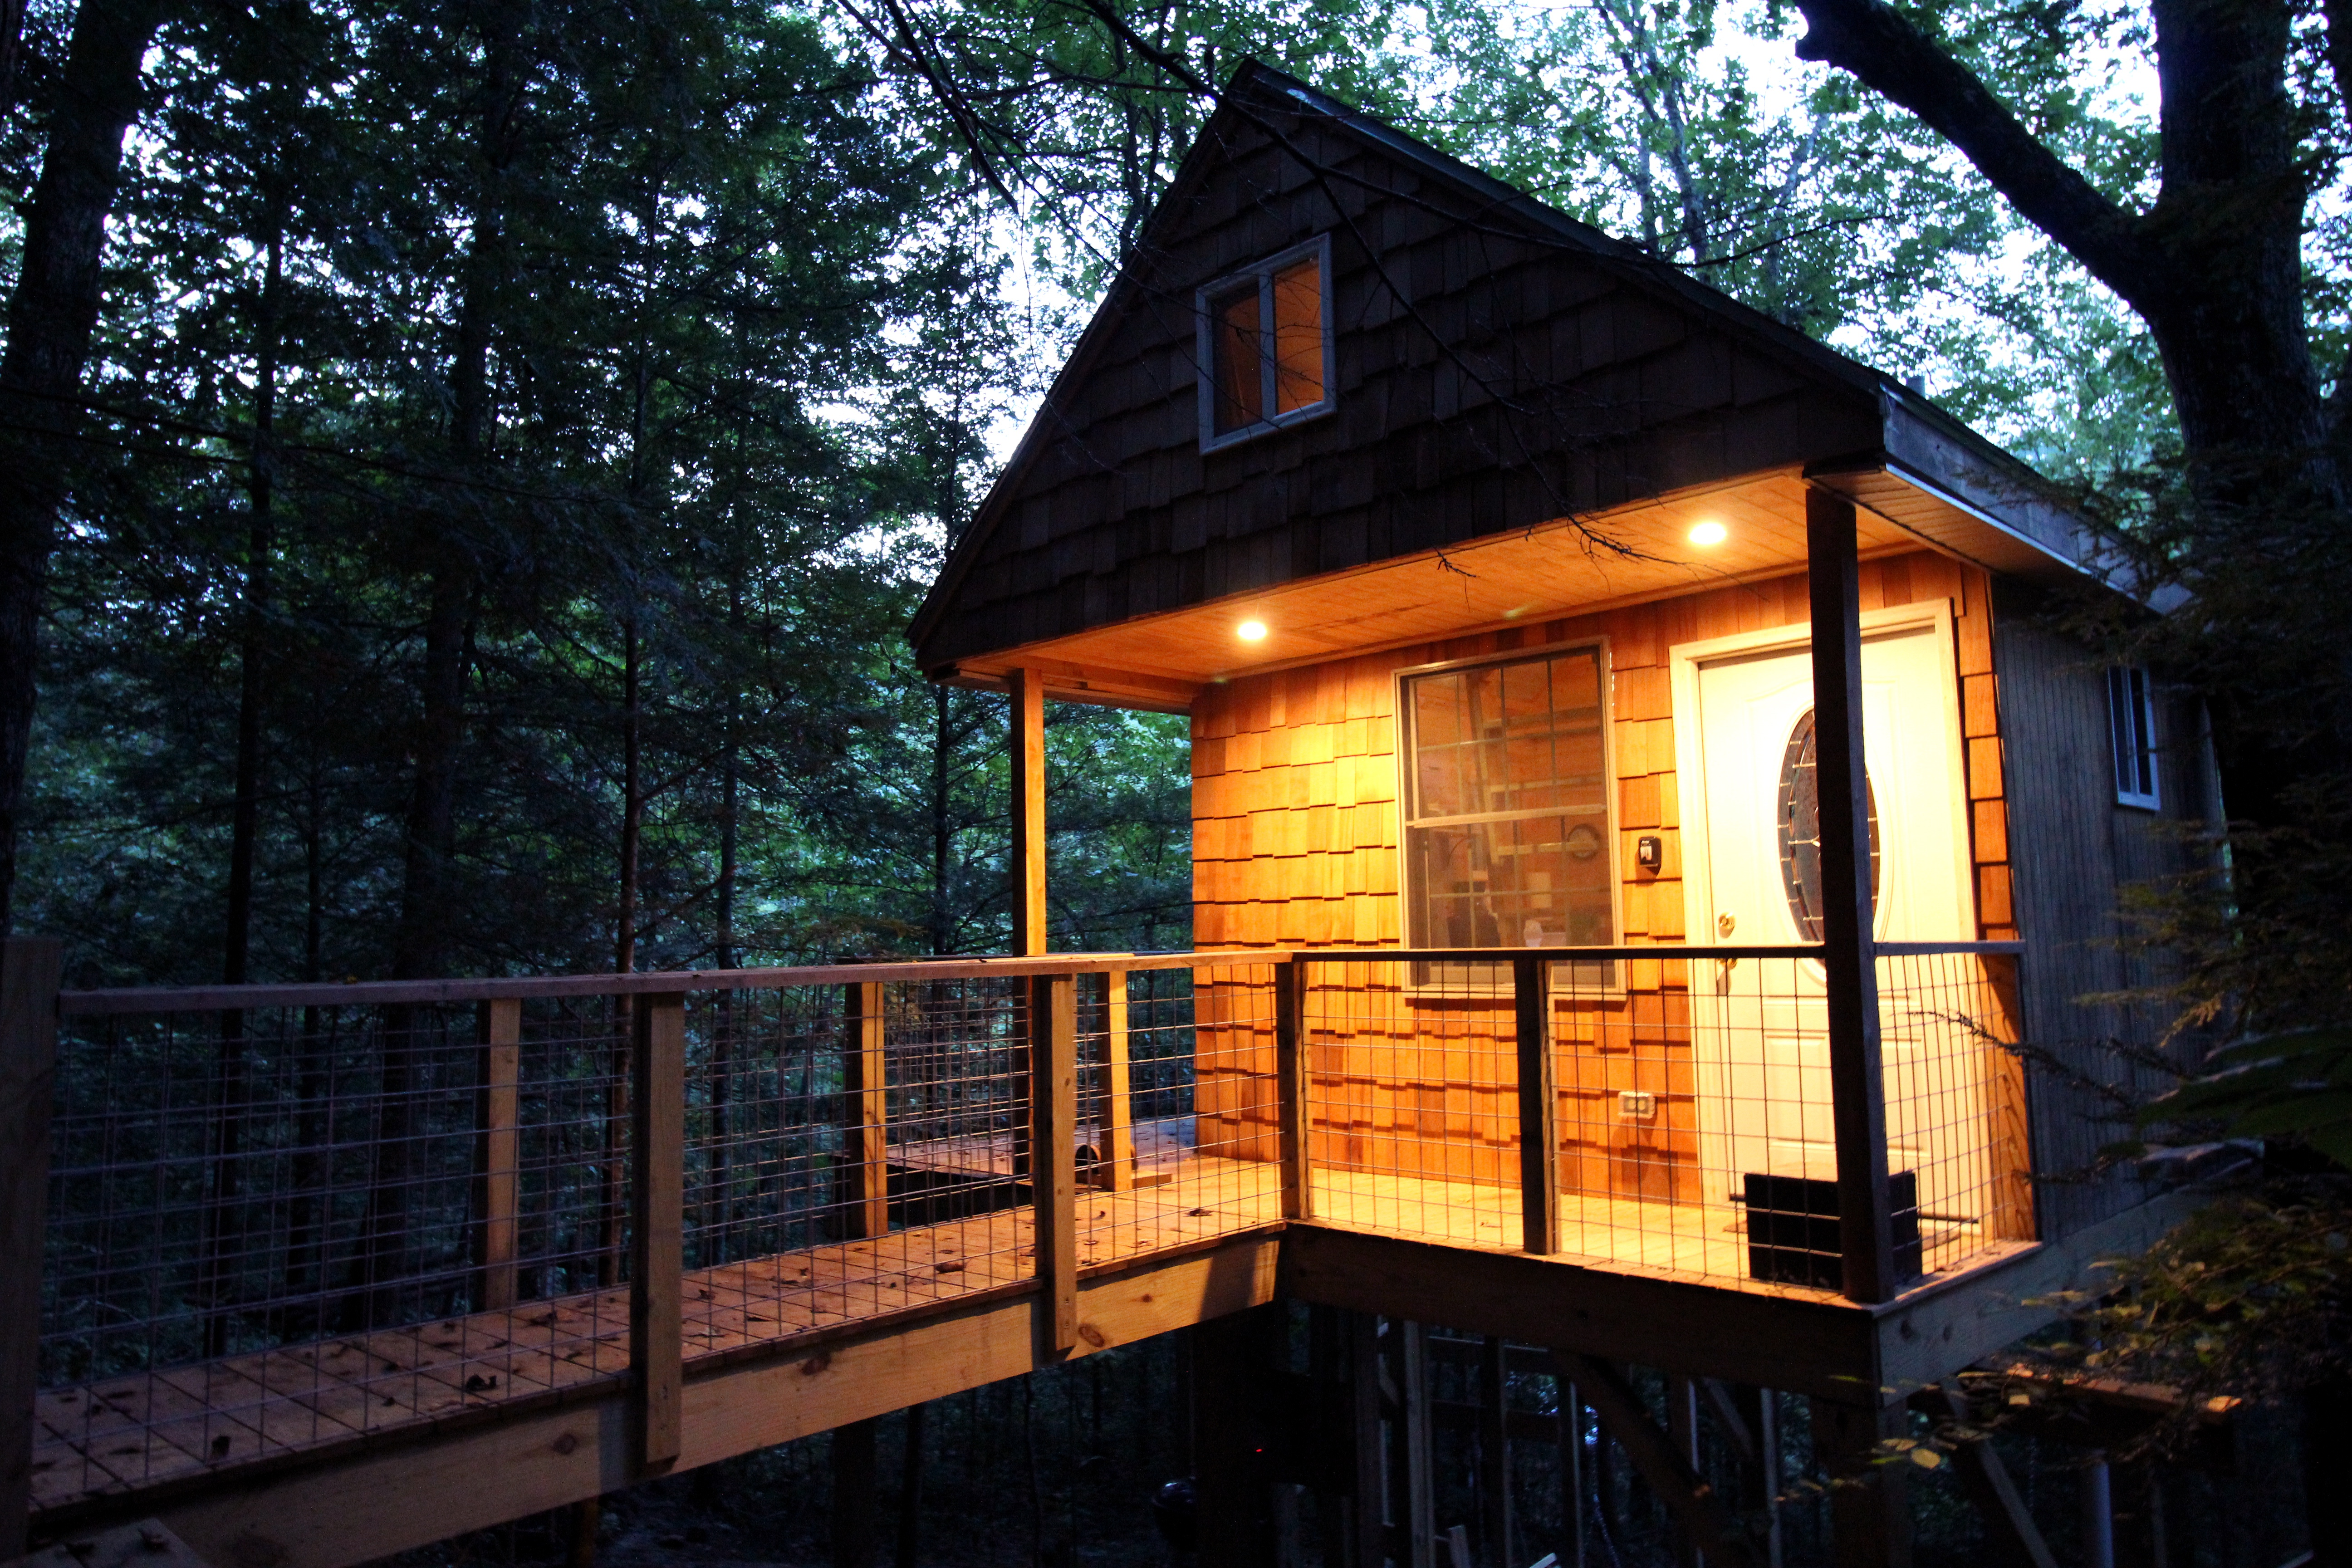 Tree House in Red River Gorge, Kentucky